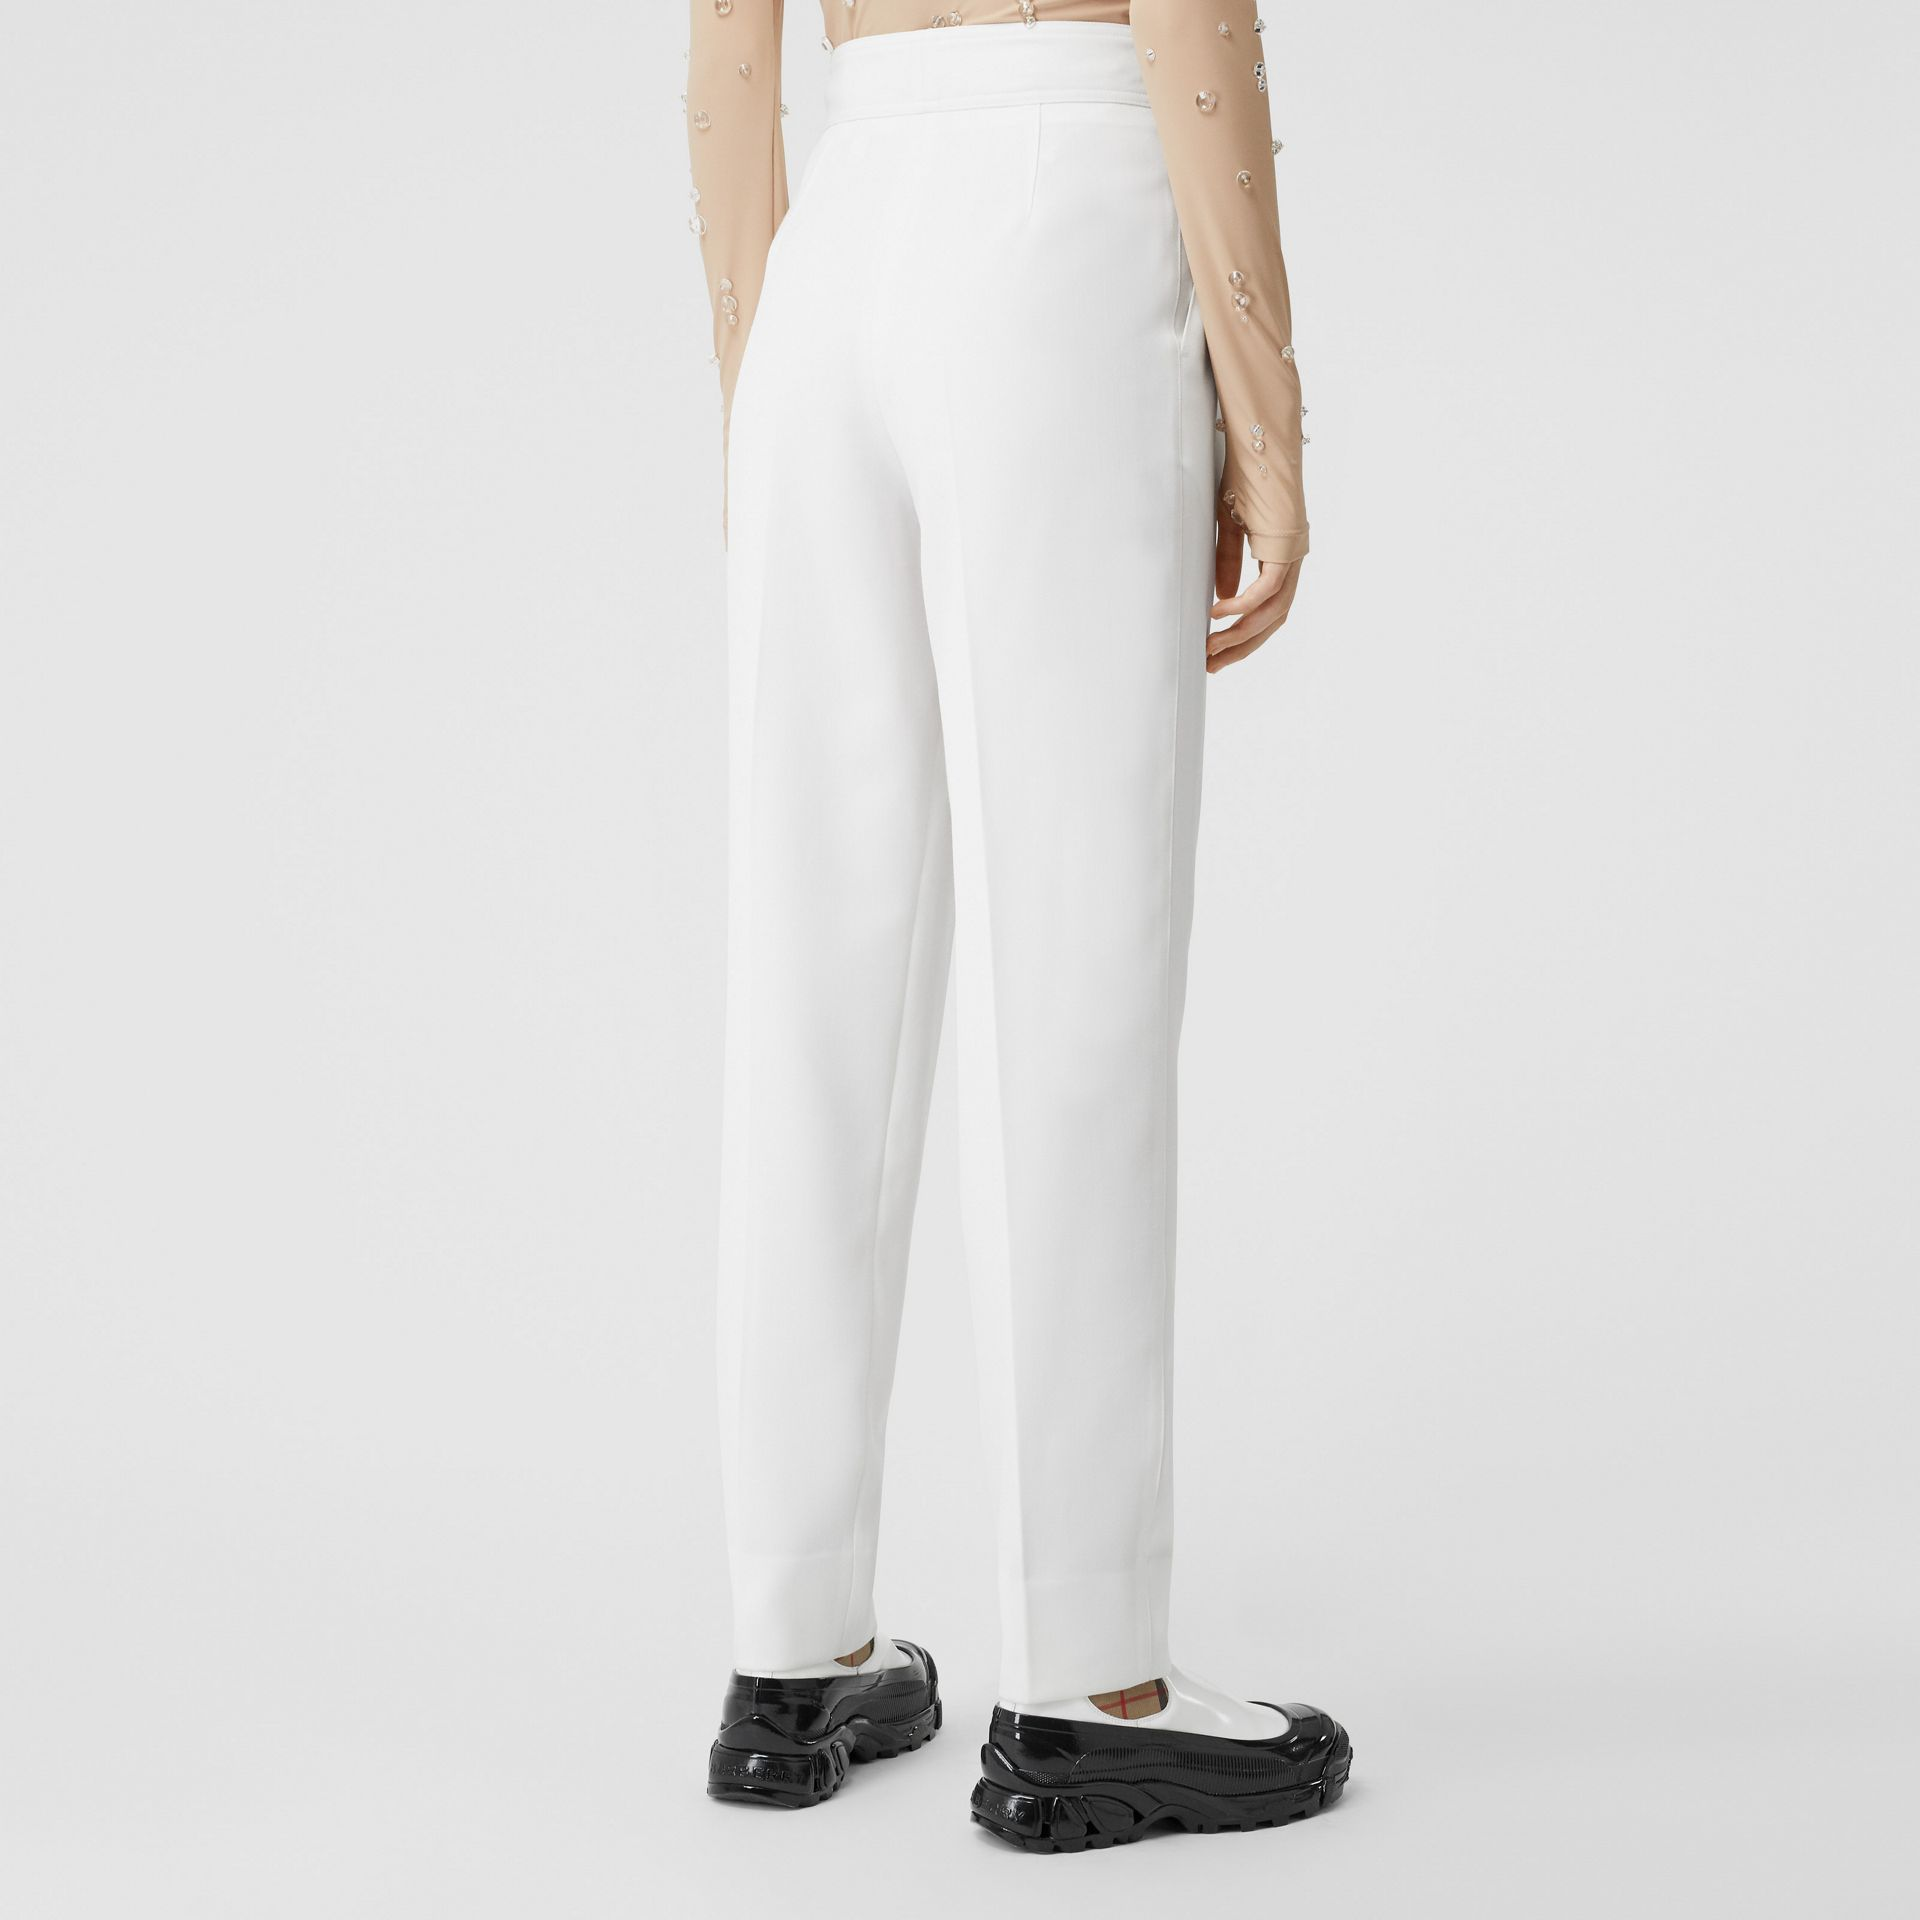 Location Print Wool Blend Tailored Trousers in Optic White - Women | Burberry United Kingdom - gallery image 2